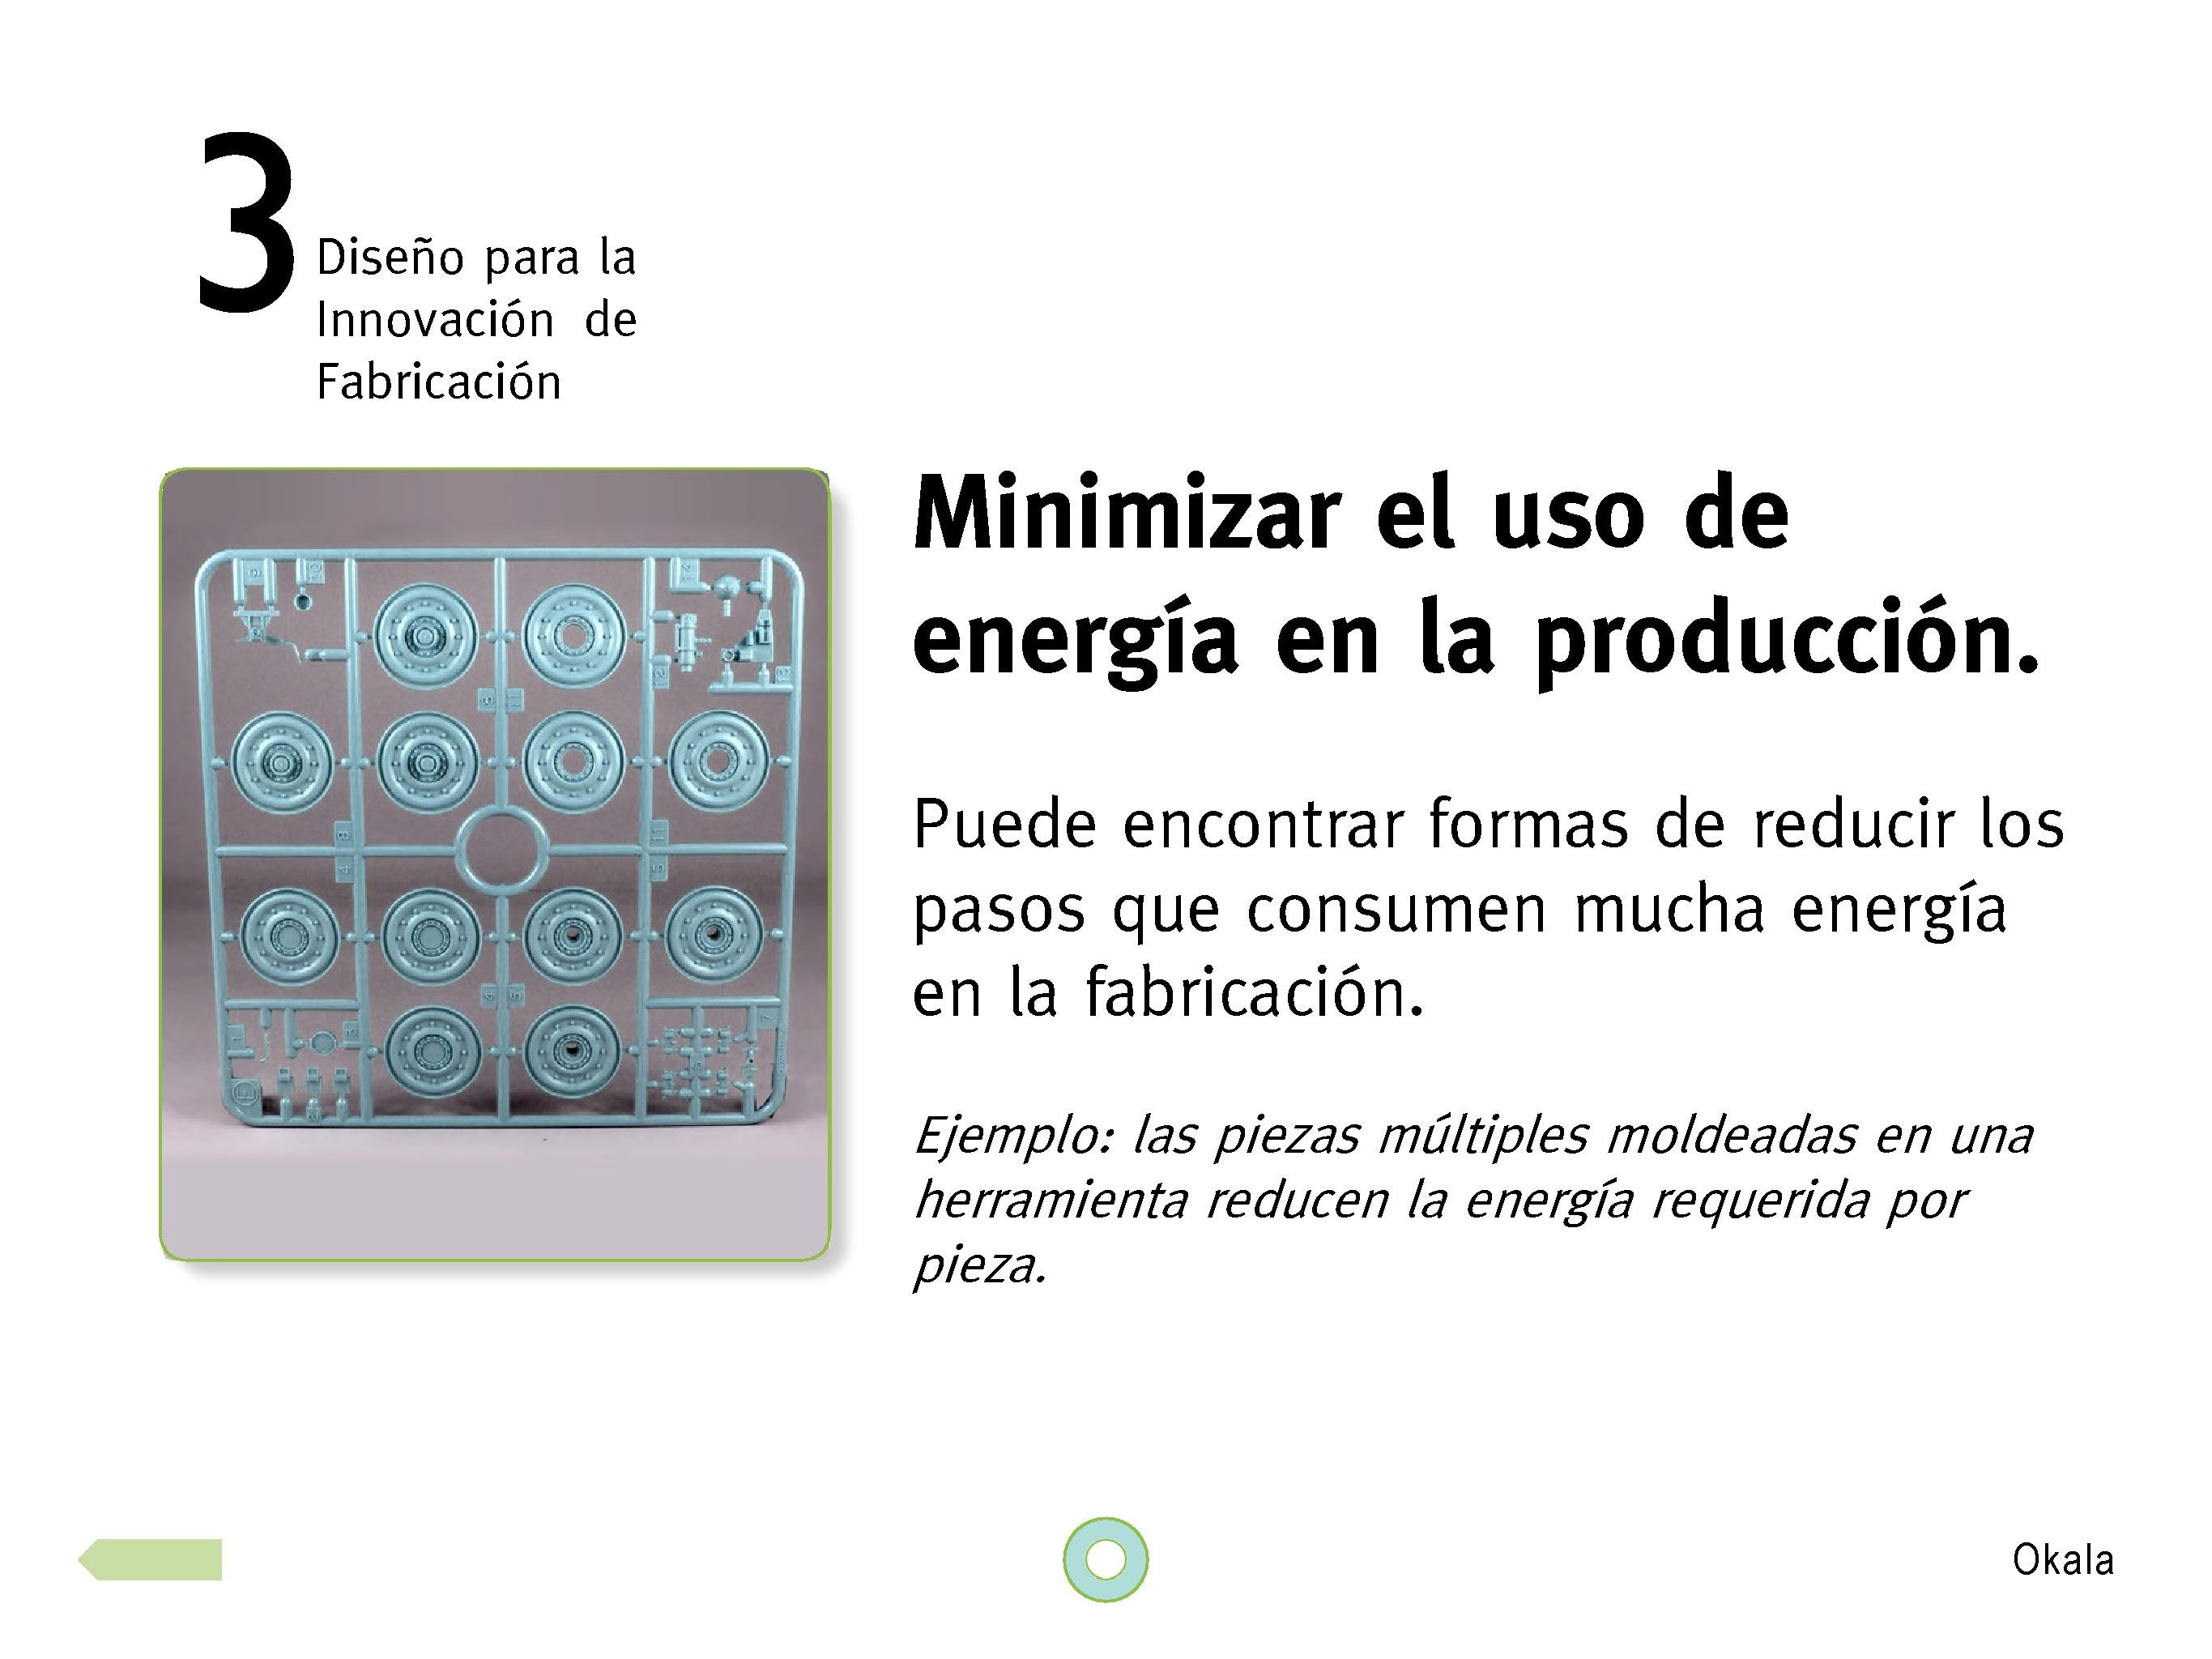 okala-ecodesign-strategy-guide-2012-spanish.new_page_18-1